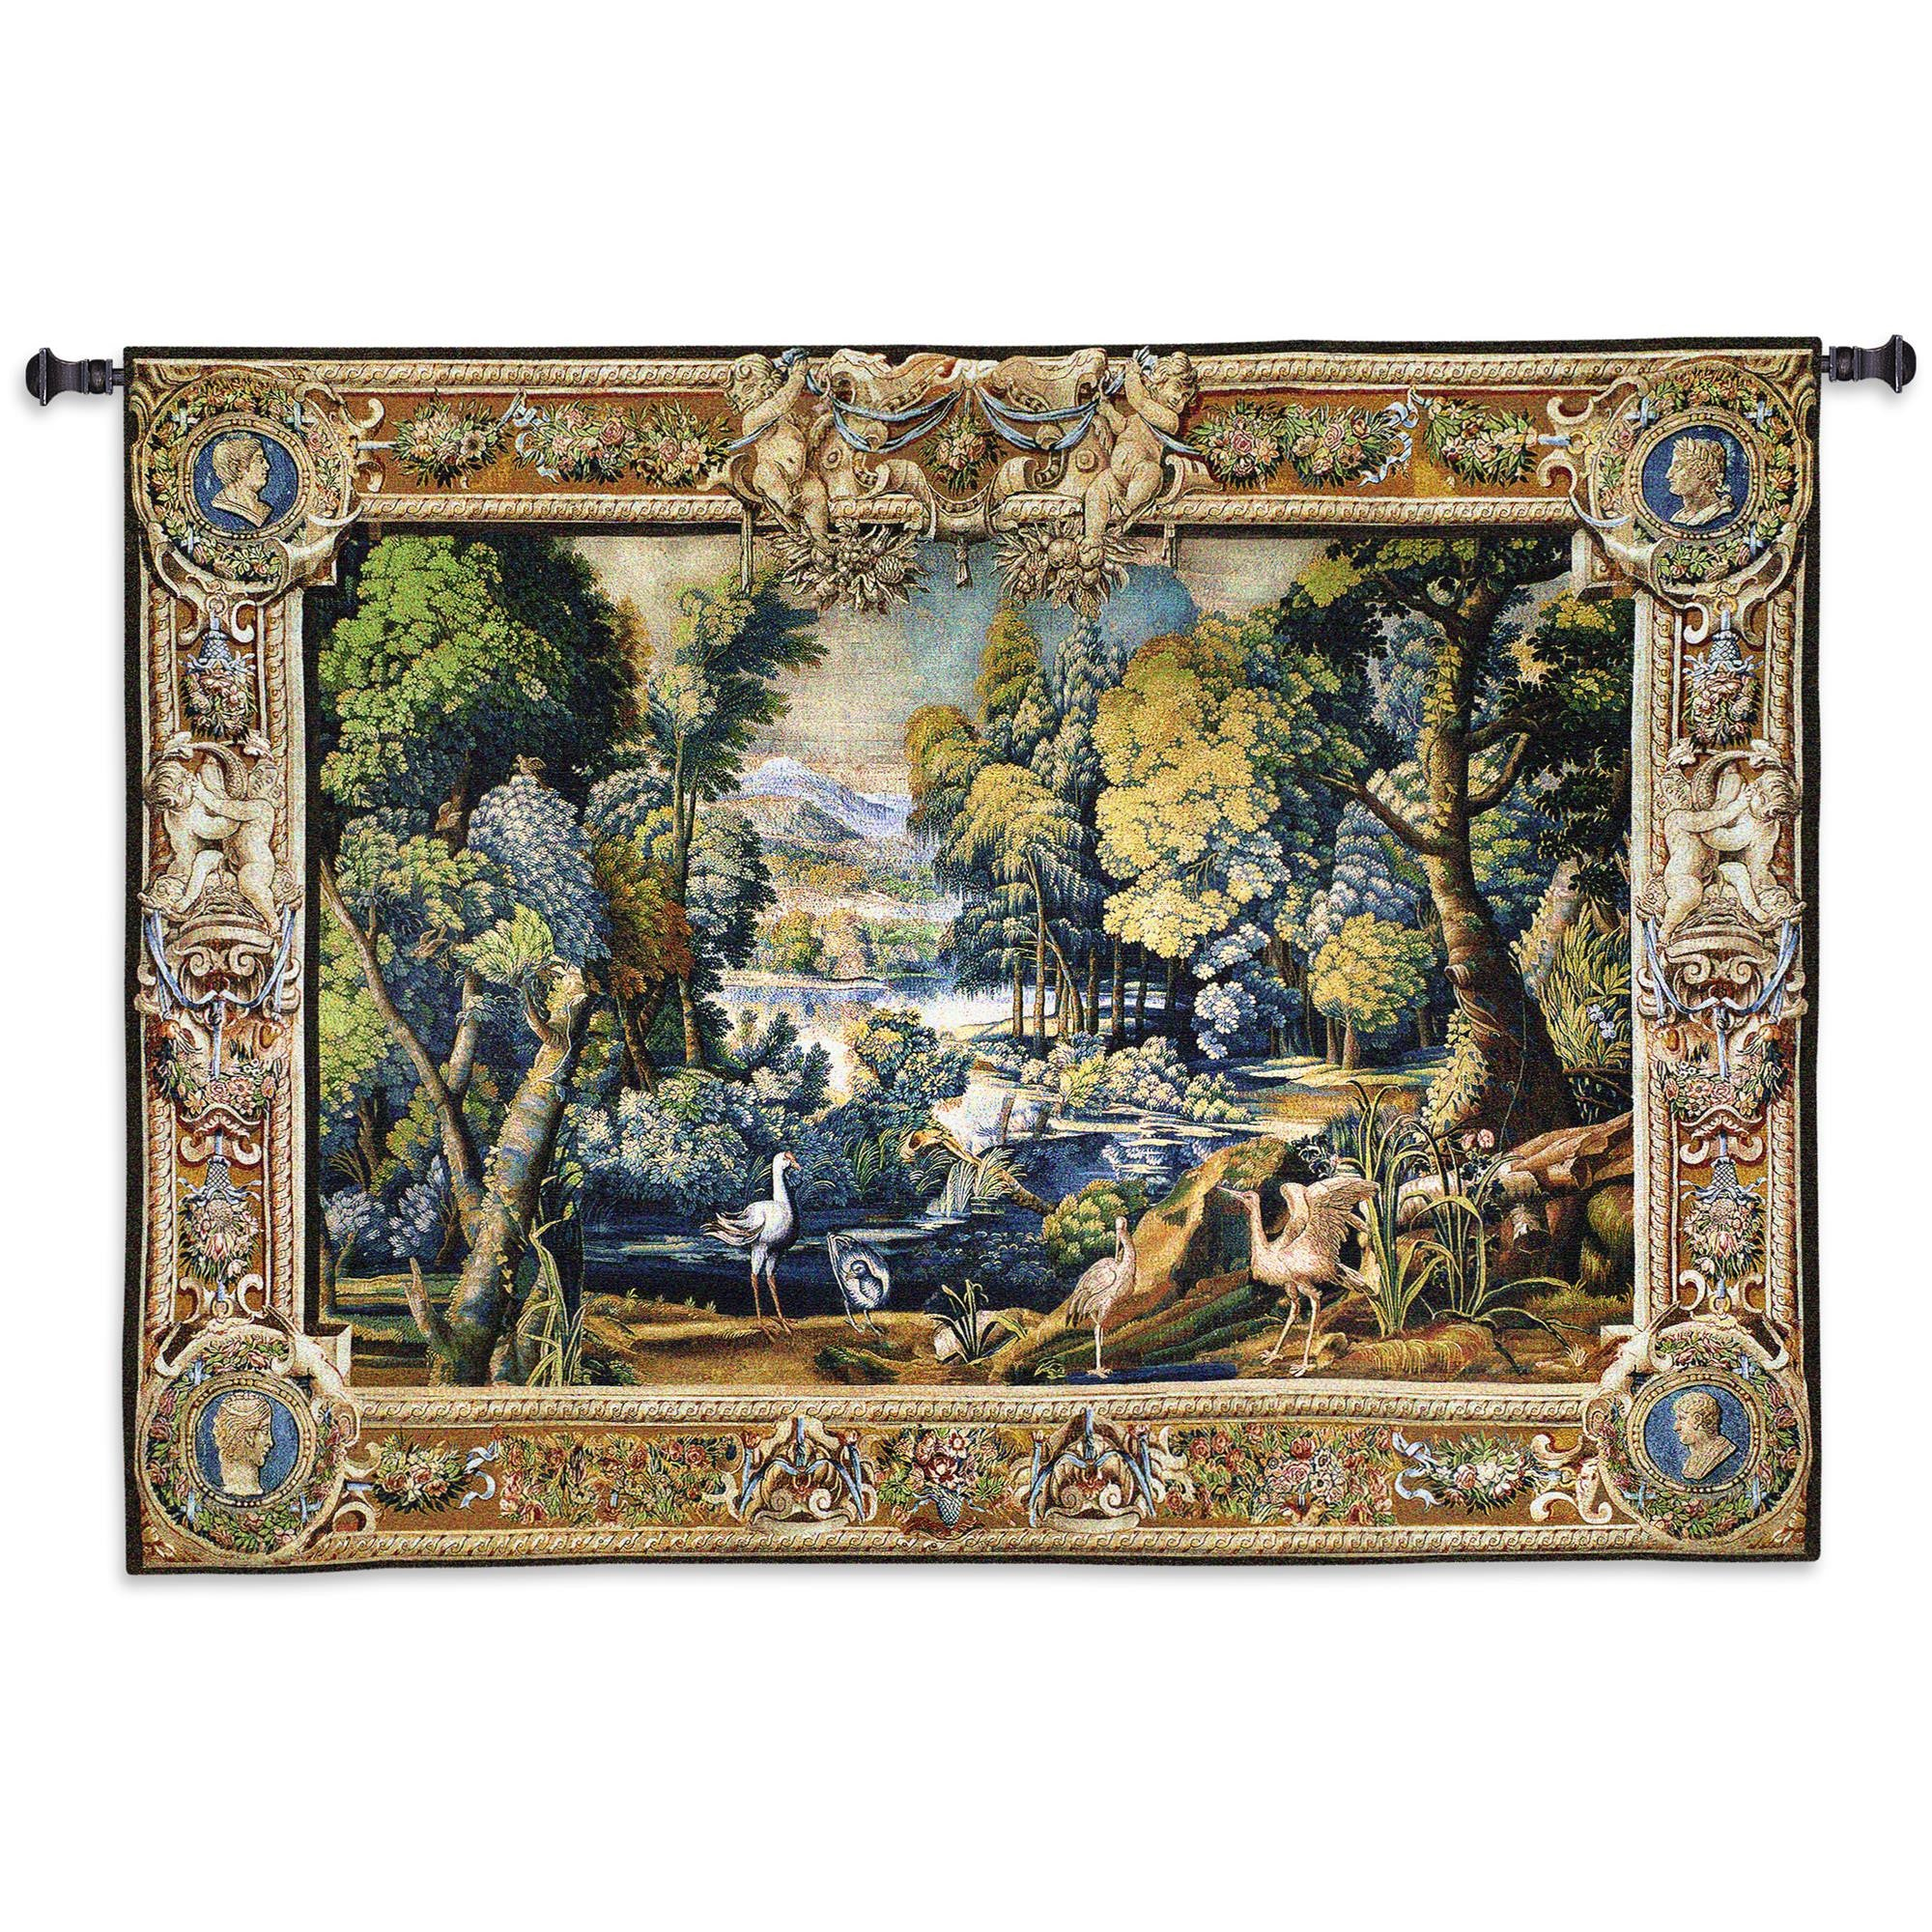 bb75050df5 15th century Historical Animals and Wildlife Wall Hanging Tapestry